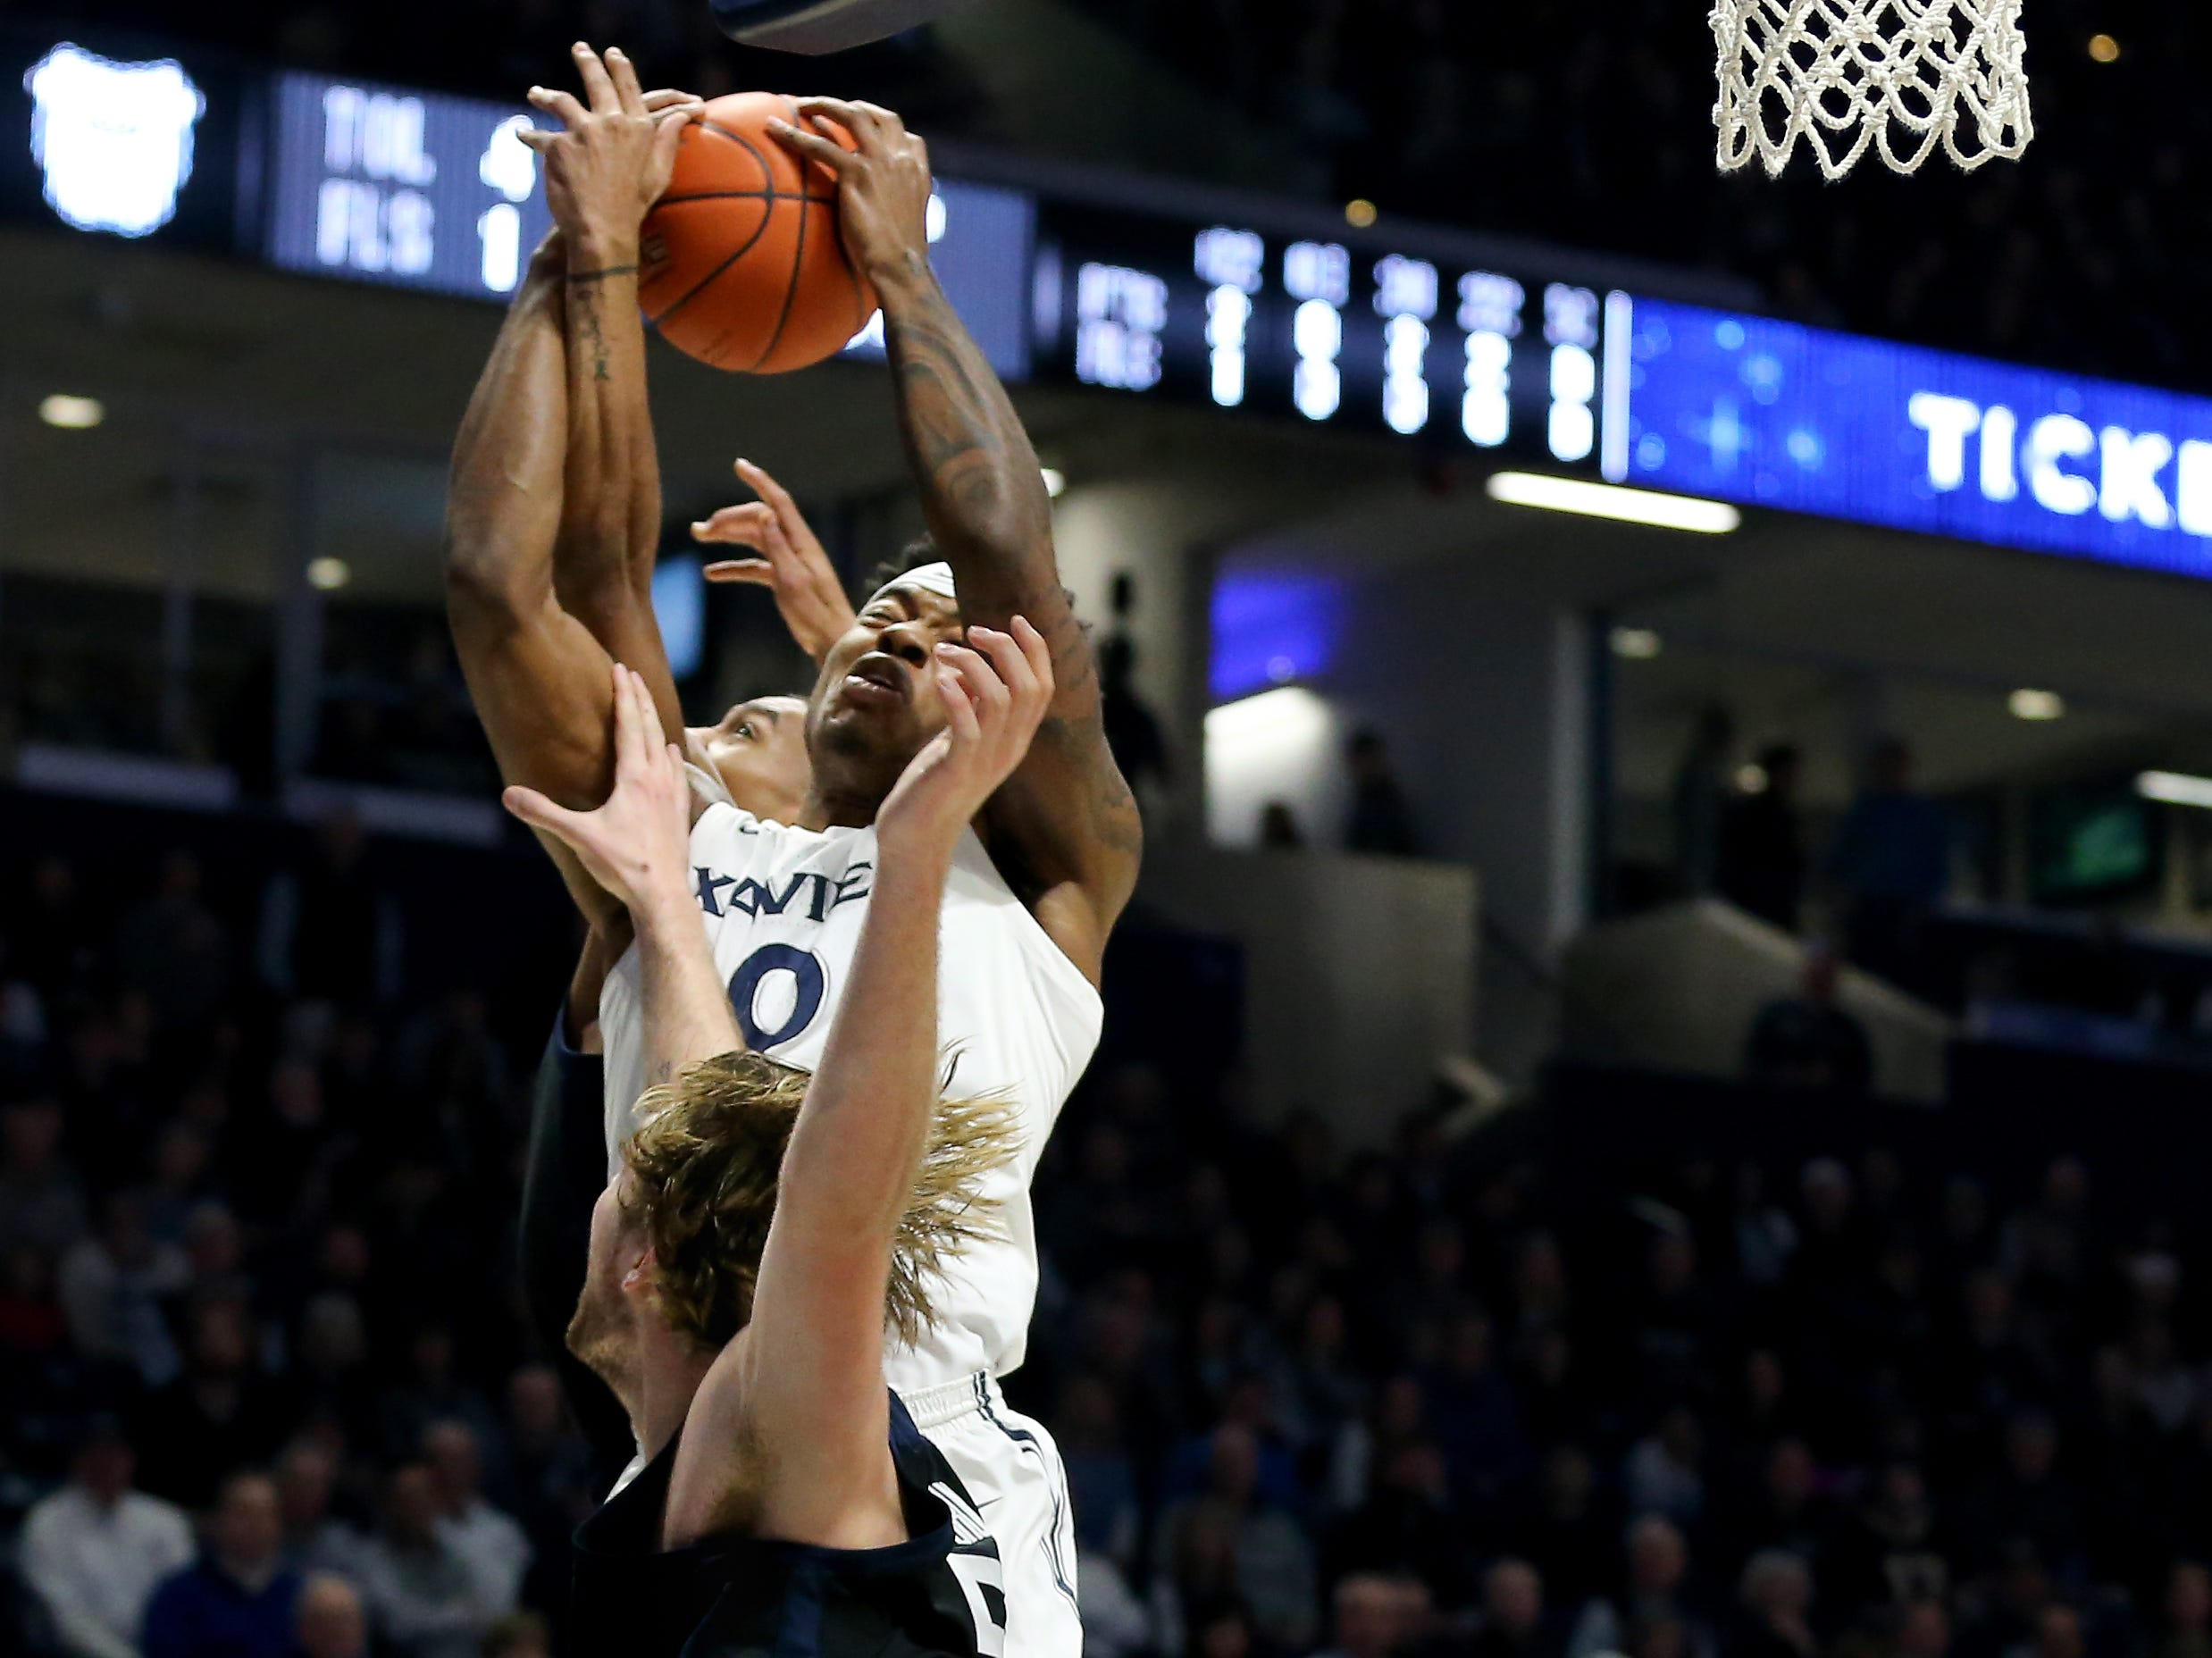 Xavier Musketeers forward Tyrique Jones (0) pulls down a rebound over Butler Bulldogs forward Joey Brunk (50) in the first half of an NCAA college basketball game, Sunday, Jan. 13, 2019, at Cintas Center in Cincinnati.